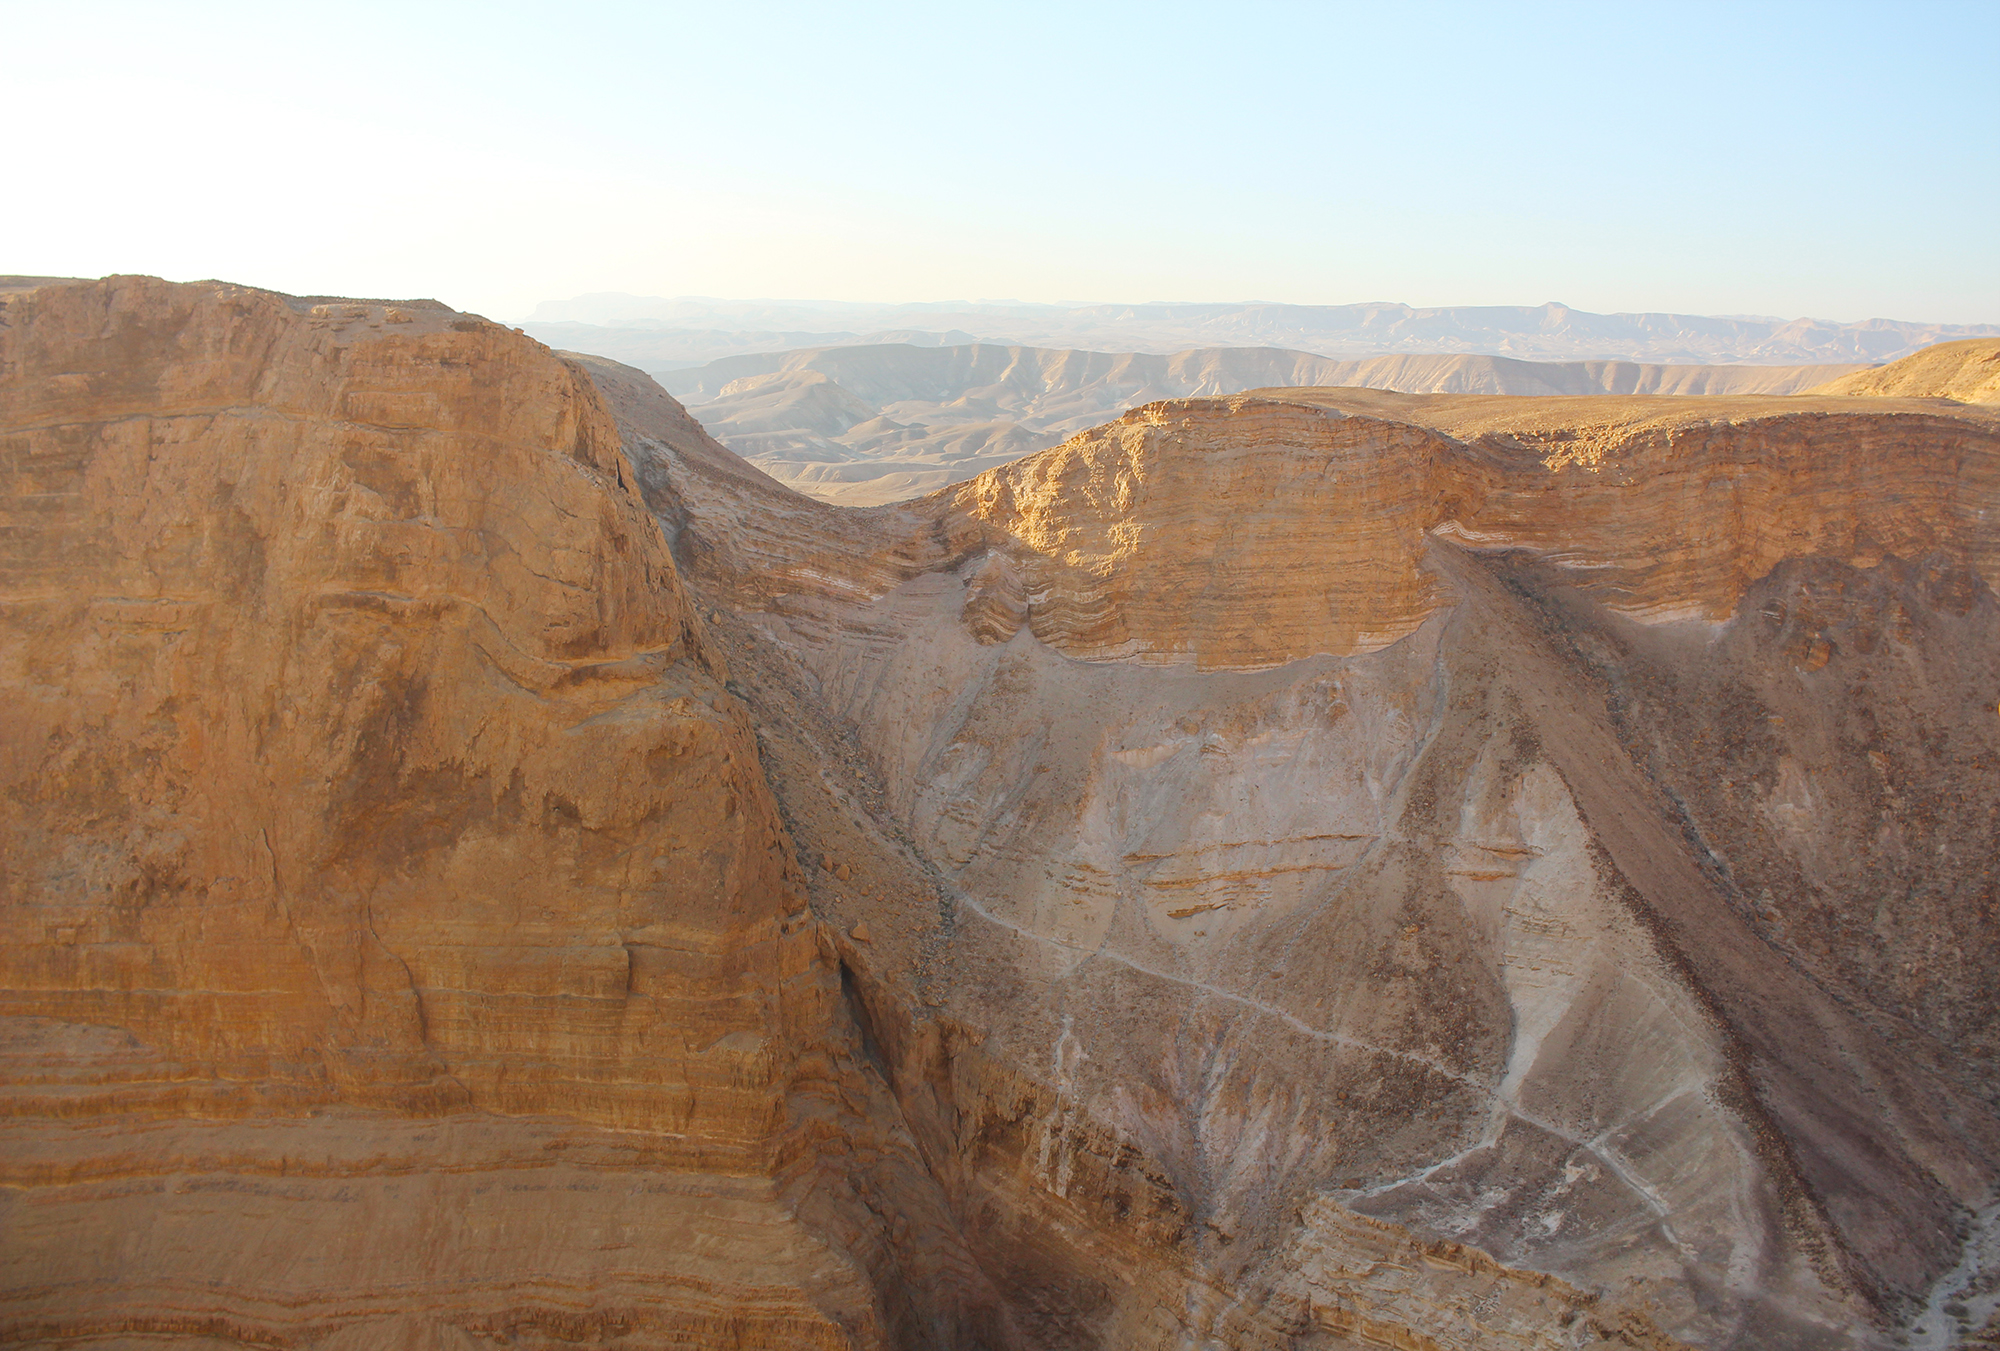 View of Masada in the Negev Desert, Israel. Photography by Geena Matuson, December 2016. Travel photography by Geena Matuson @geenamatuson #thegirlmirage.